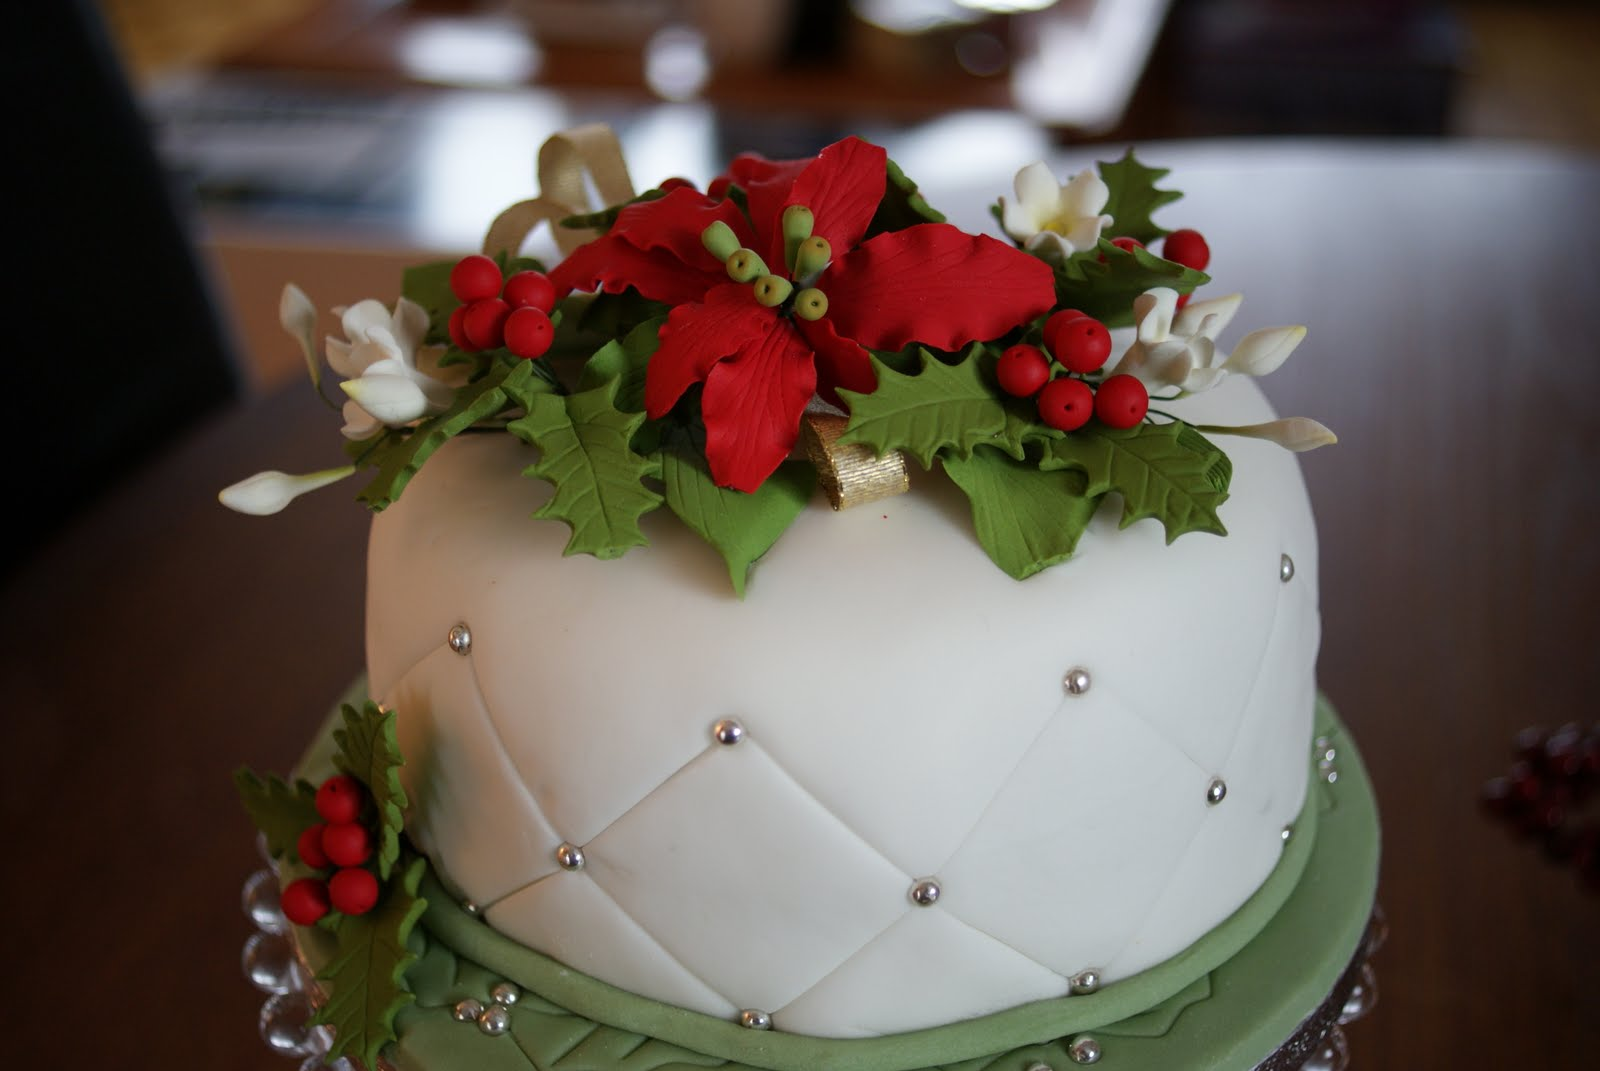 Festivals pictures christmas cakes ideas nightmare for Iced christmas cakes